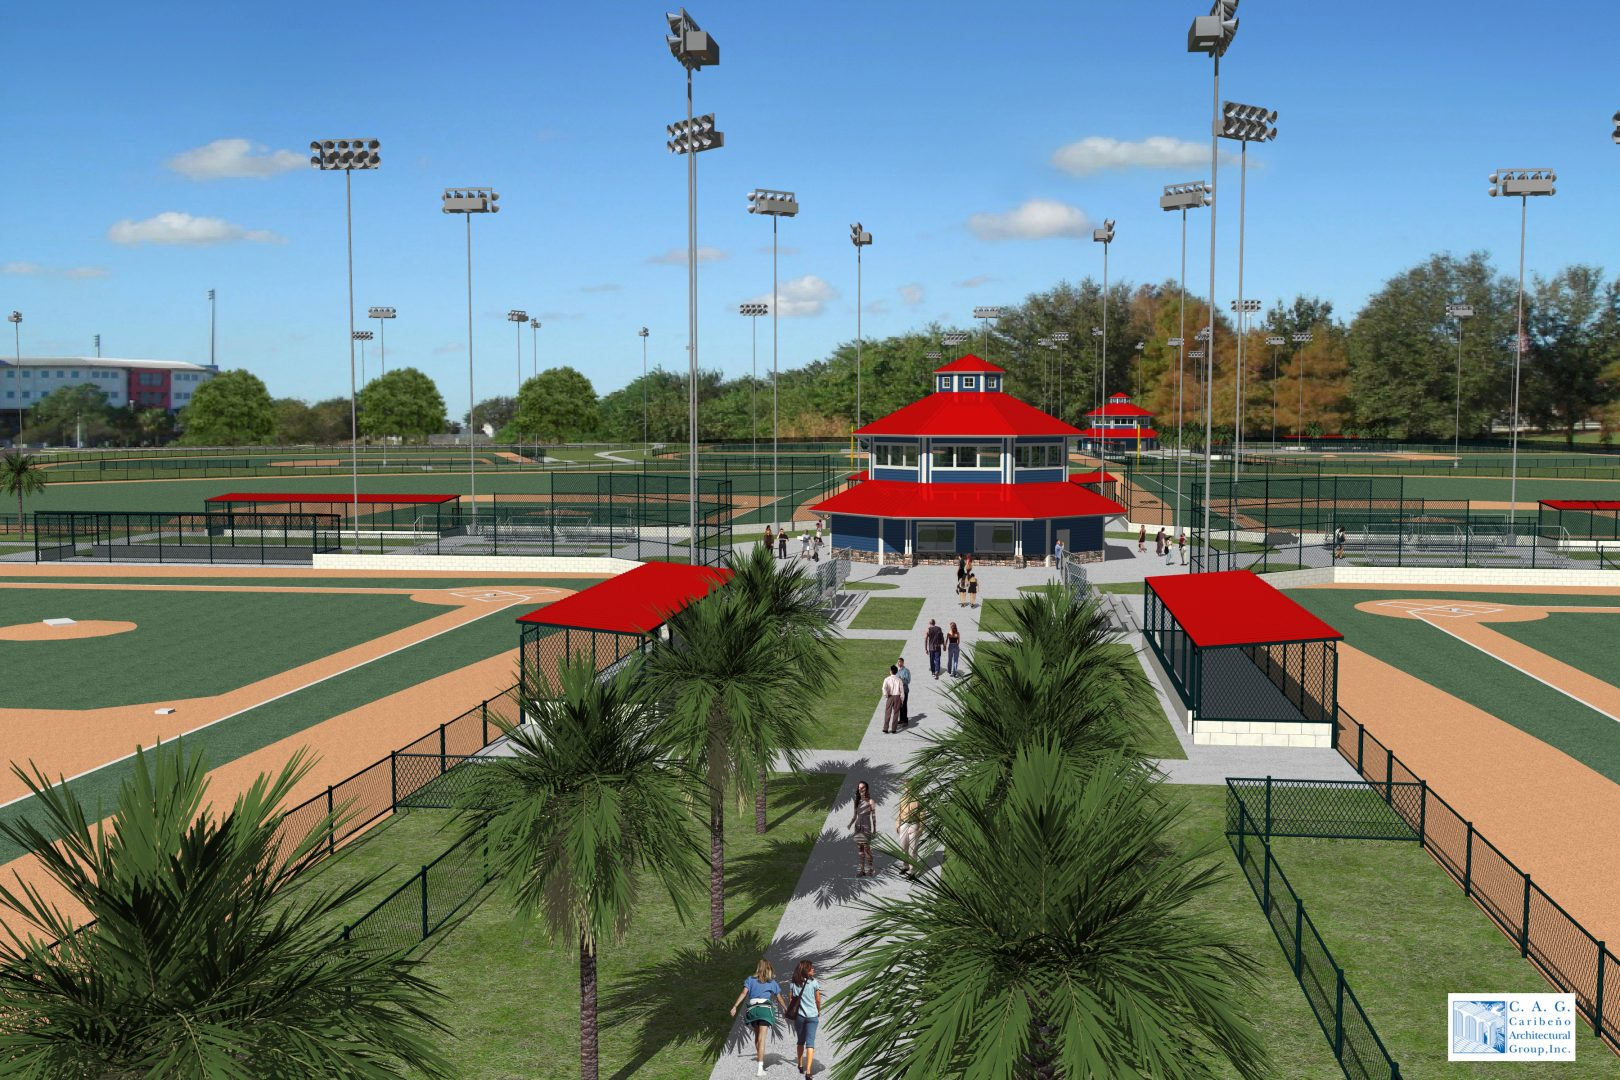 Wharton-Smith Selected as Construction Manager for Space Coast Stadium Renovations